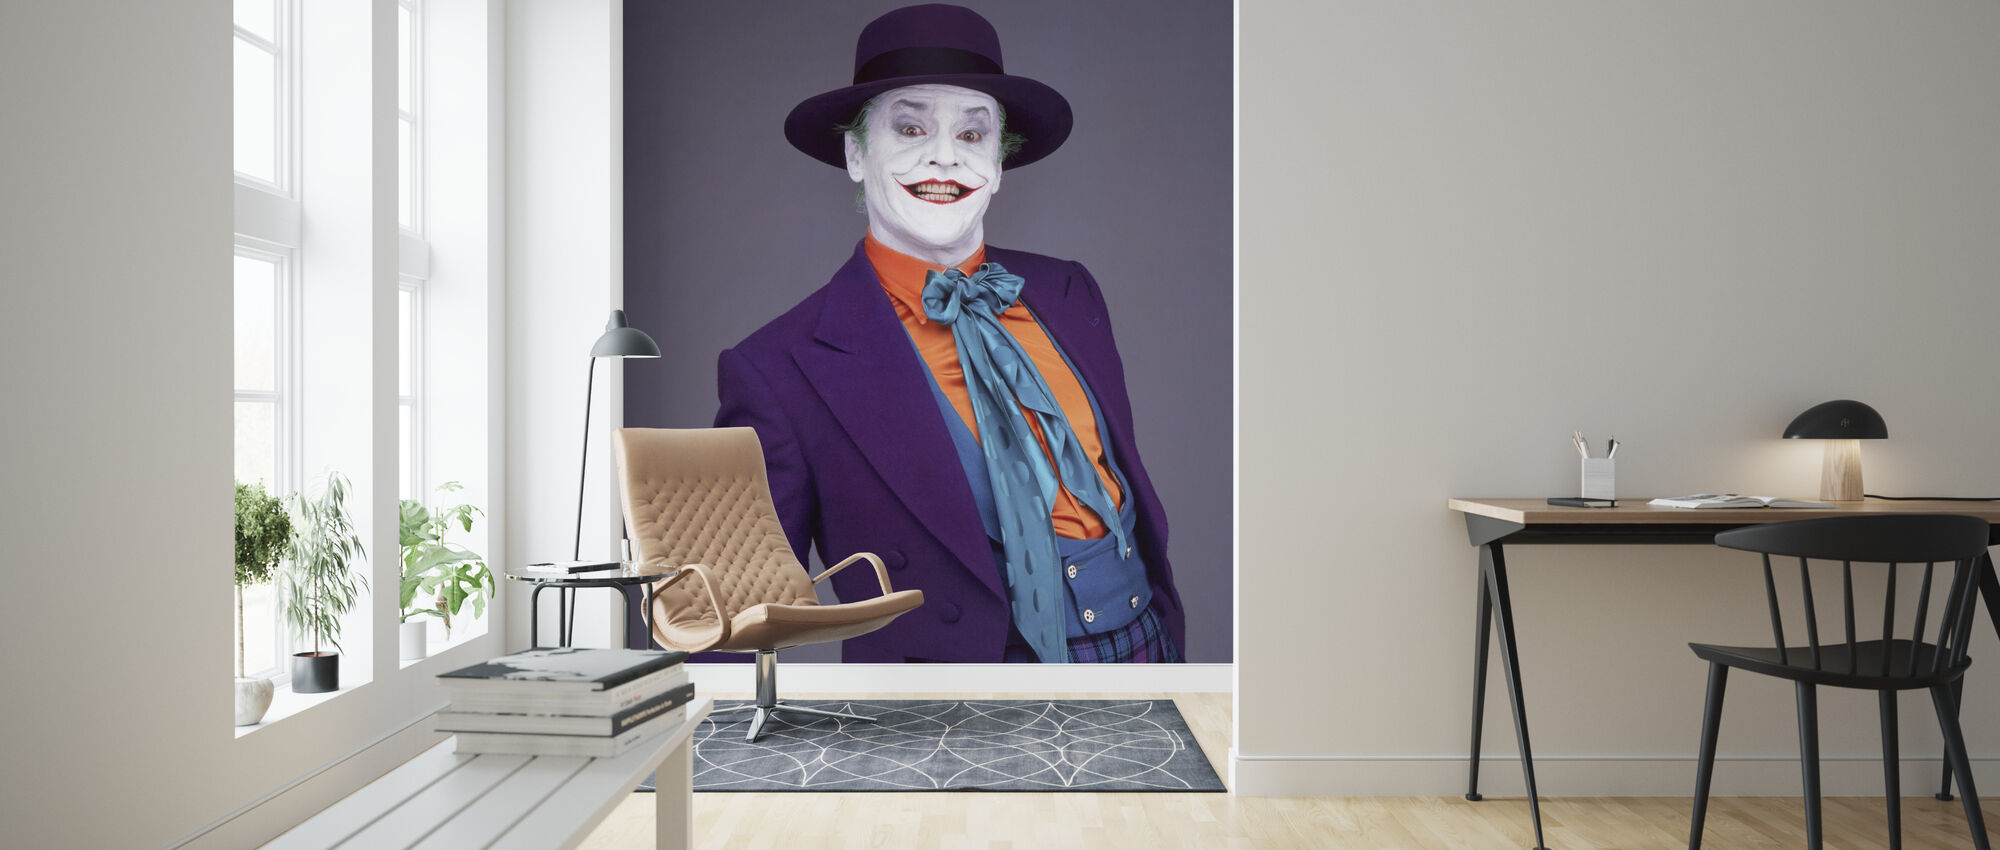 Jack Nicholson in Batman - Wallpaper - Living Room